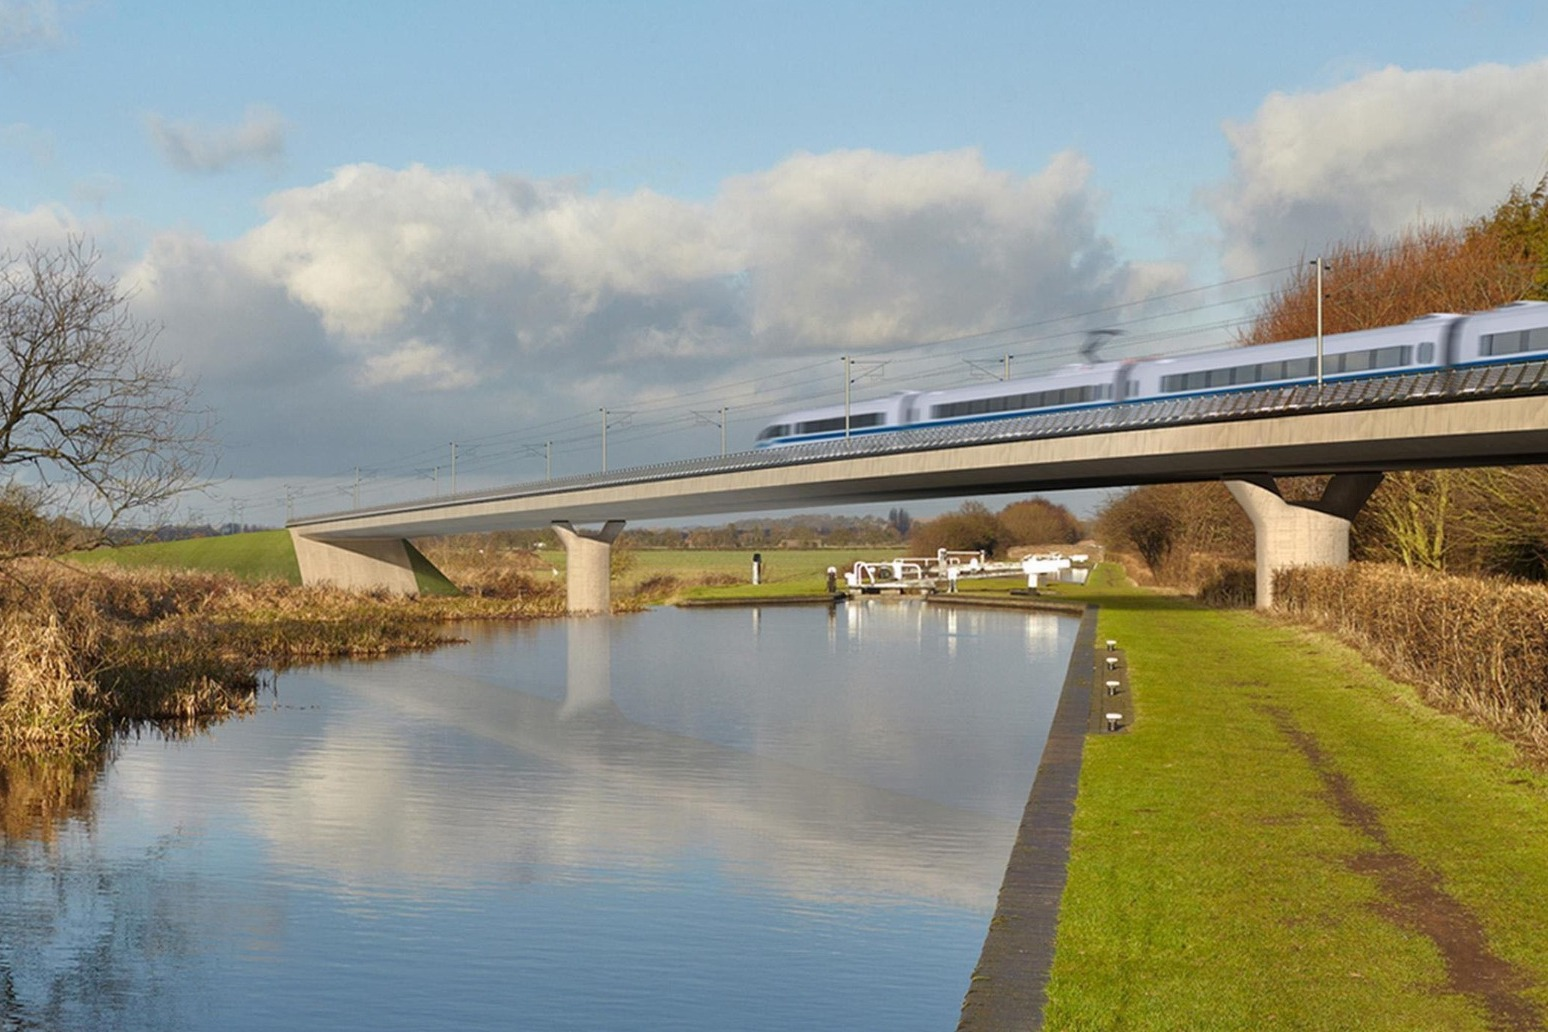 PARLIAMENT \'MISLED\' OVER HS2 - REVIEW PANEL DEPUTY CHAIRMAN